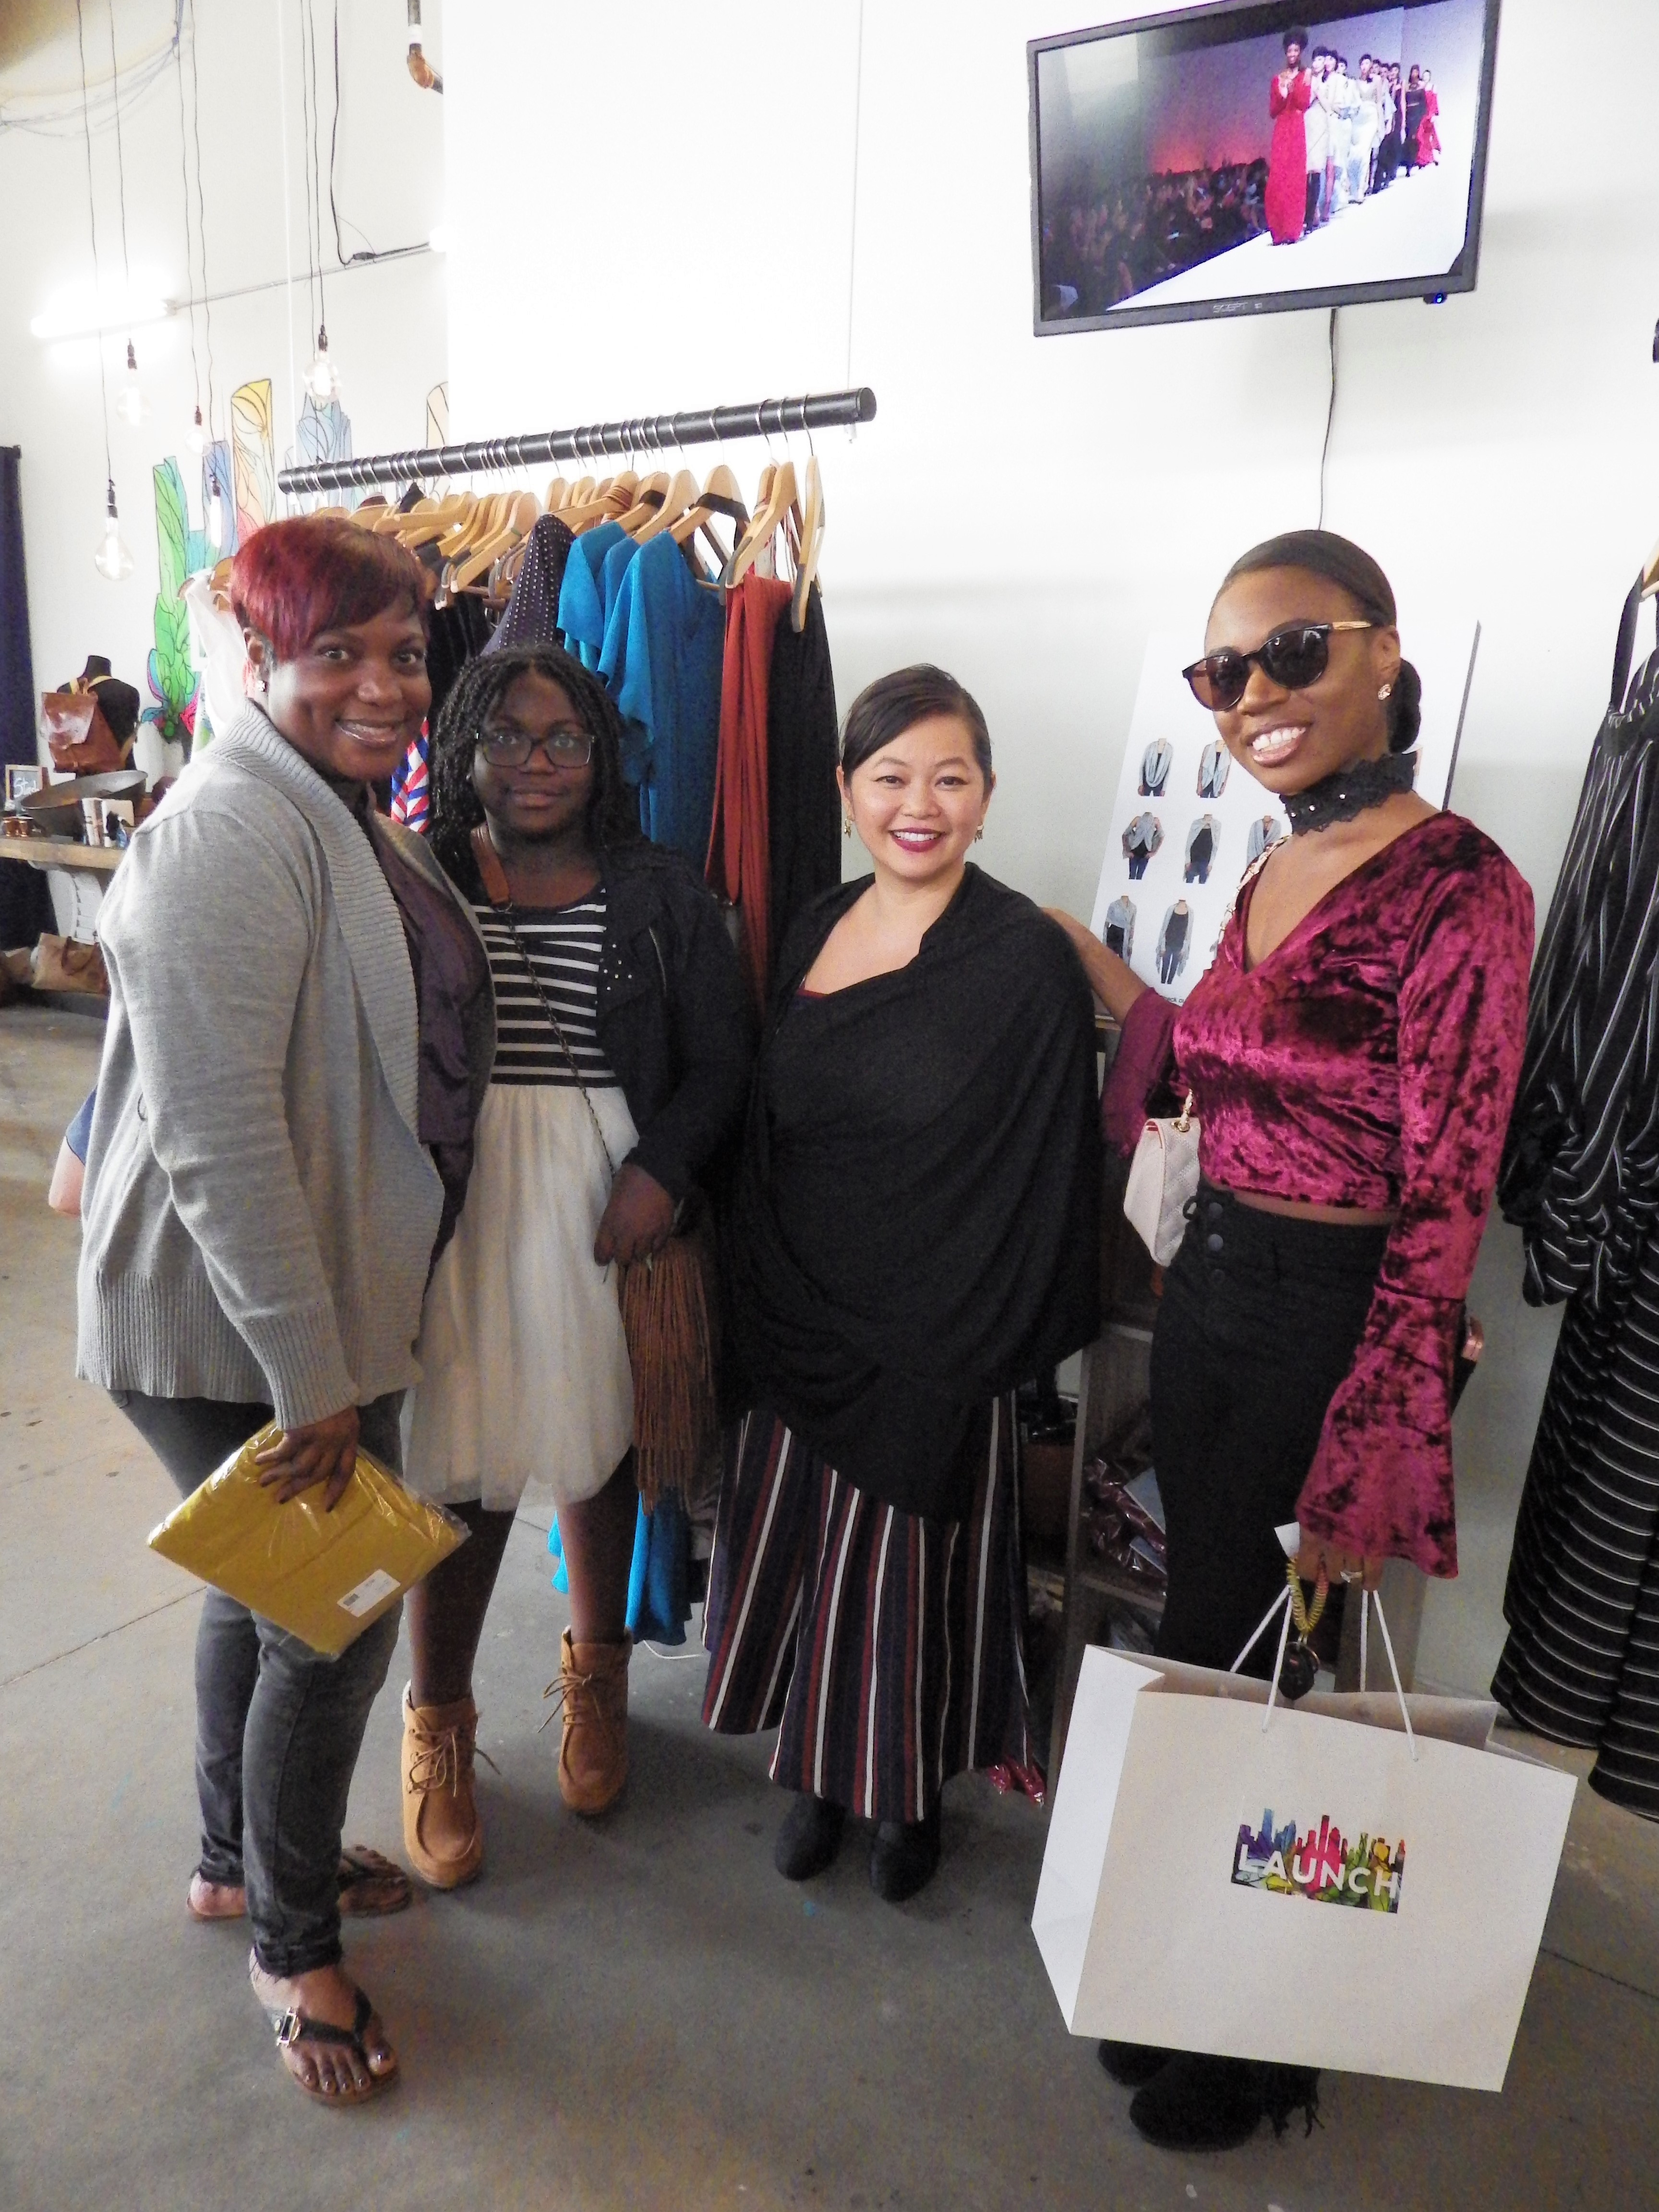 LAUNCH pop-up shop has Houston designers with a wide array of creativity